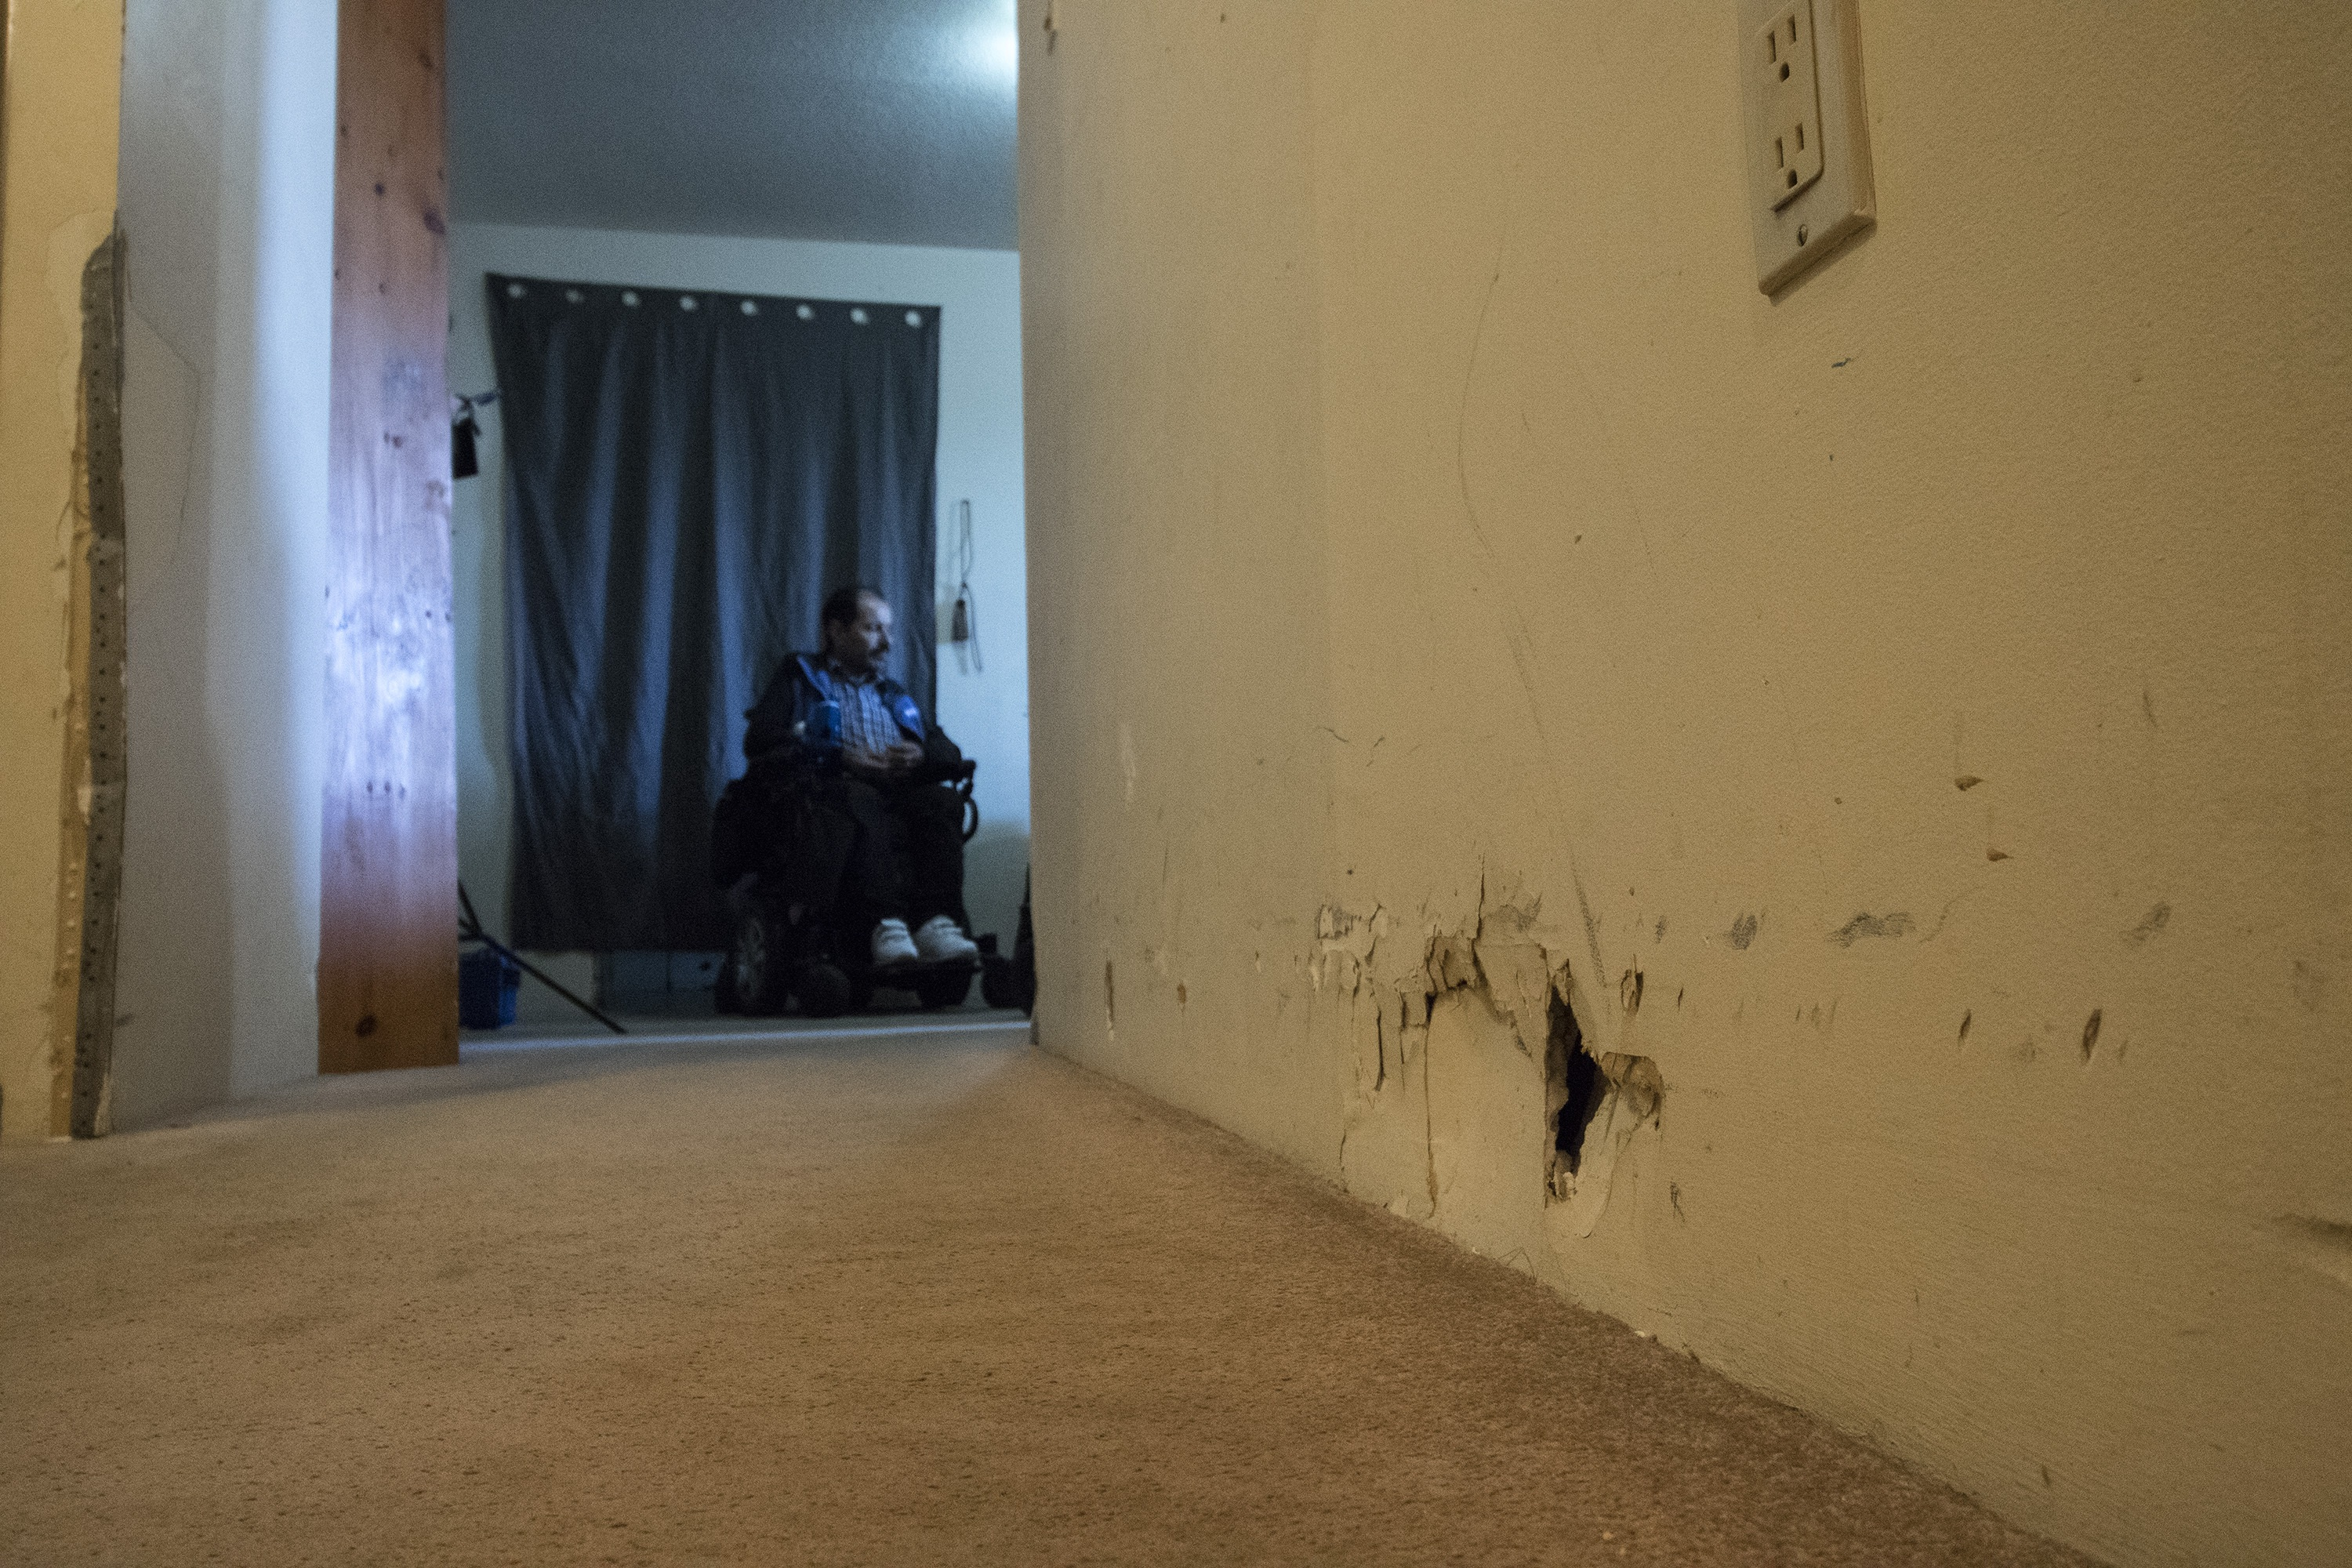 The hallway leading to the living room. Mohammad is seen in the background. (Dave Irish/CBC)